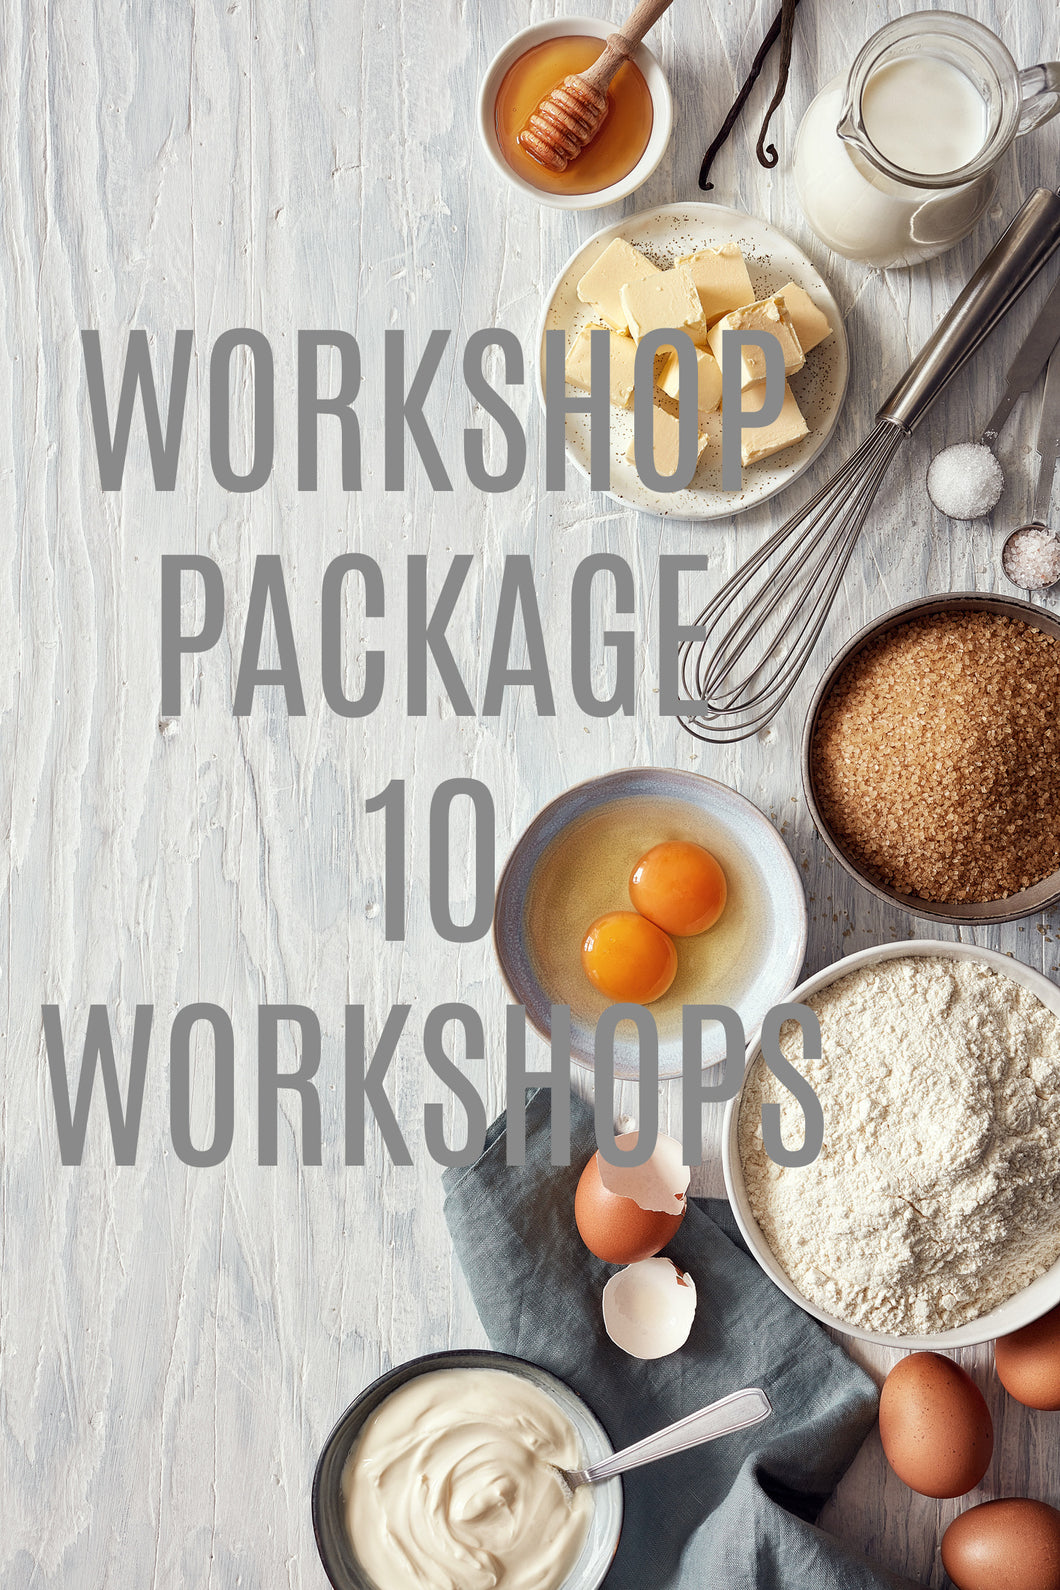 DGW Workshops Package (10 Workshops)